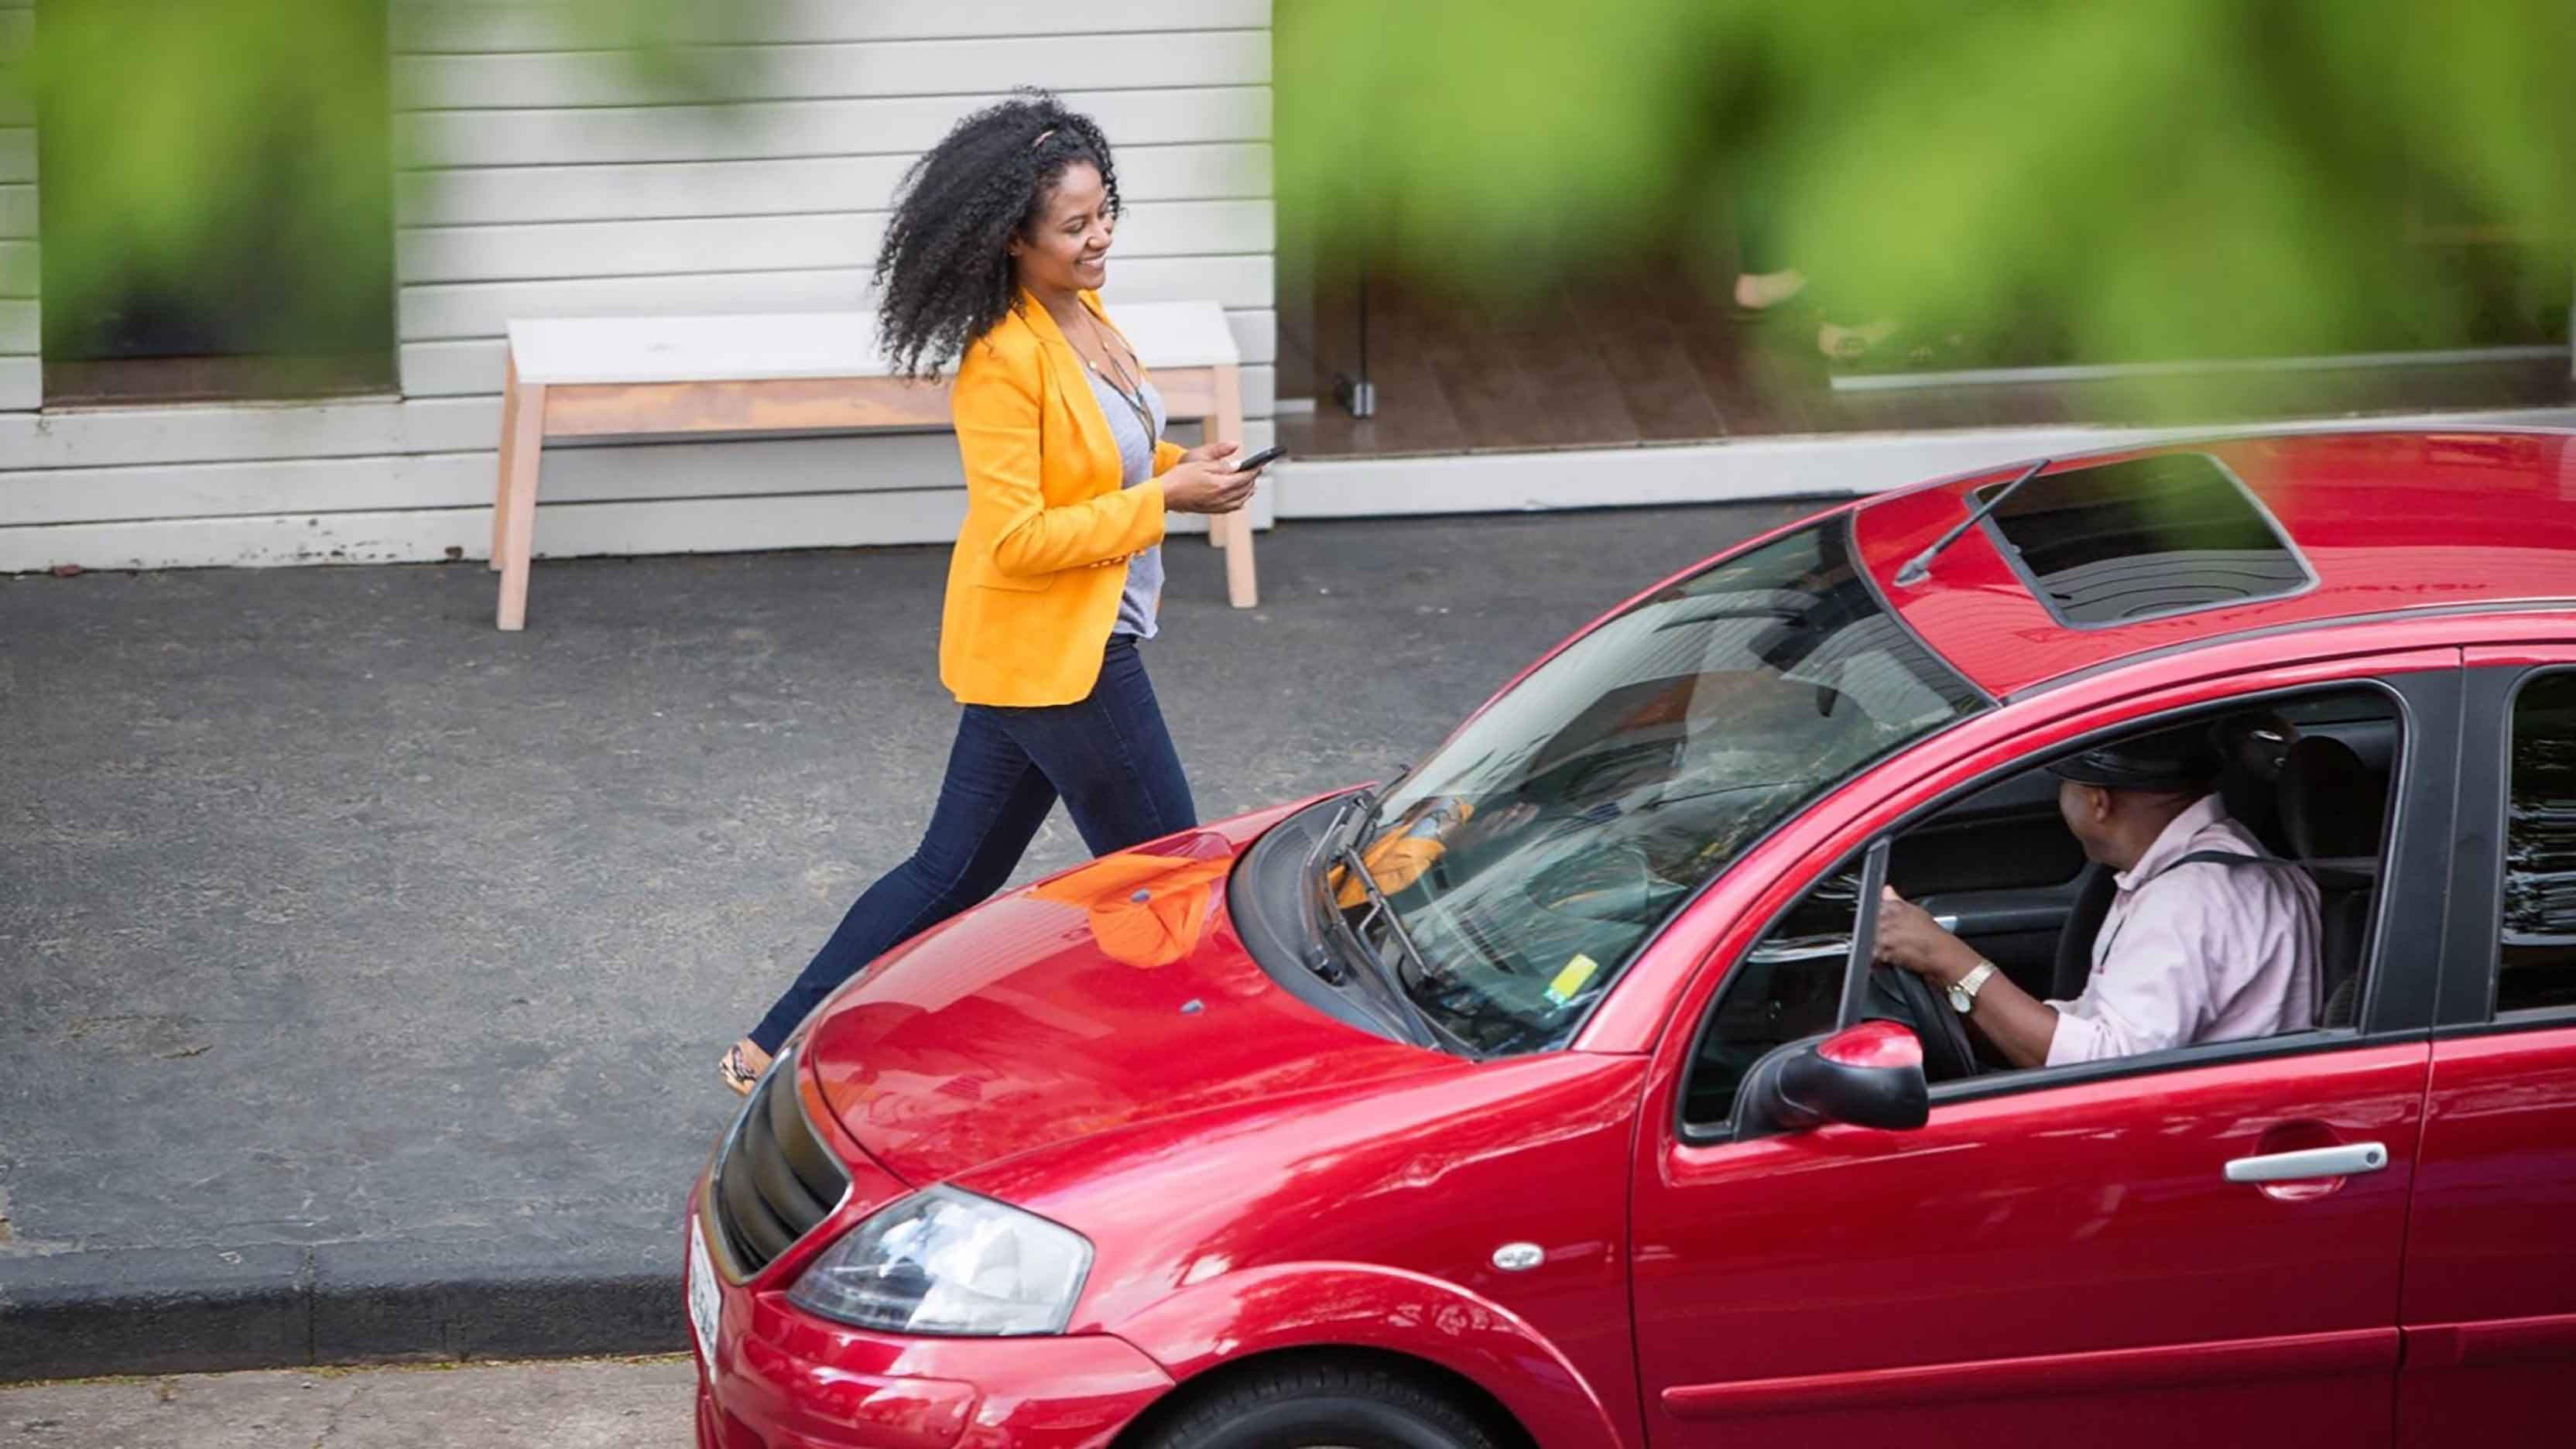 An image showing an Uber driver in a red car picking up a passenger